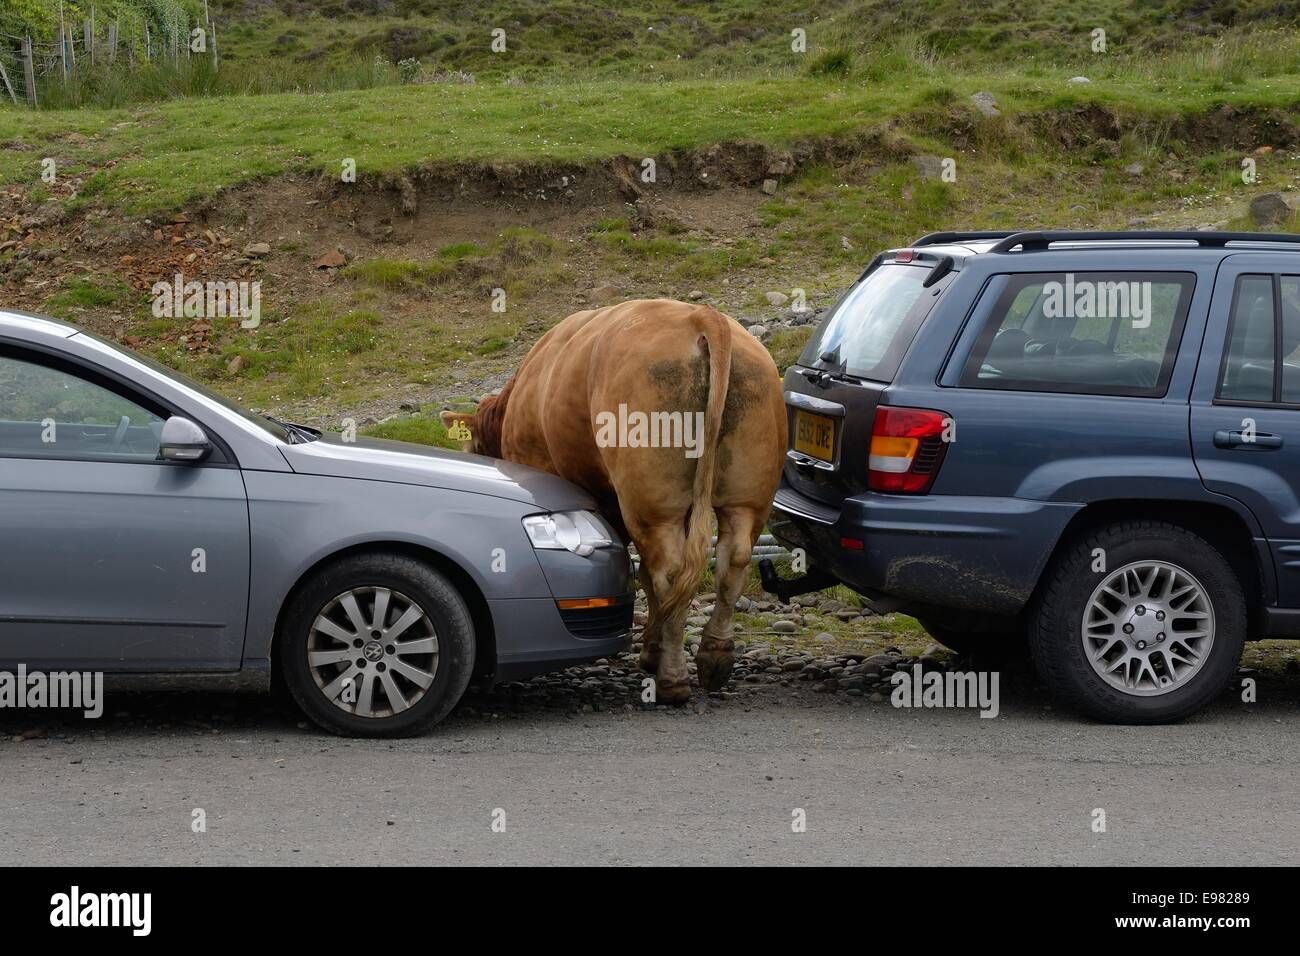 a-large-bull-squeezes-between-two-parked